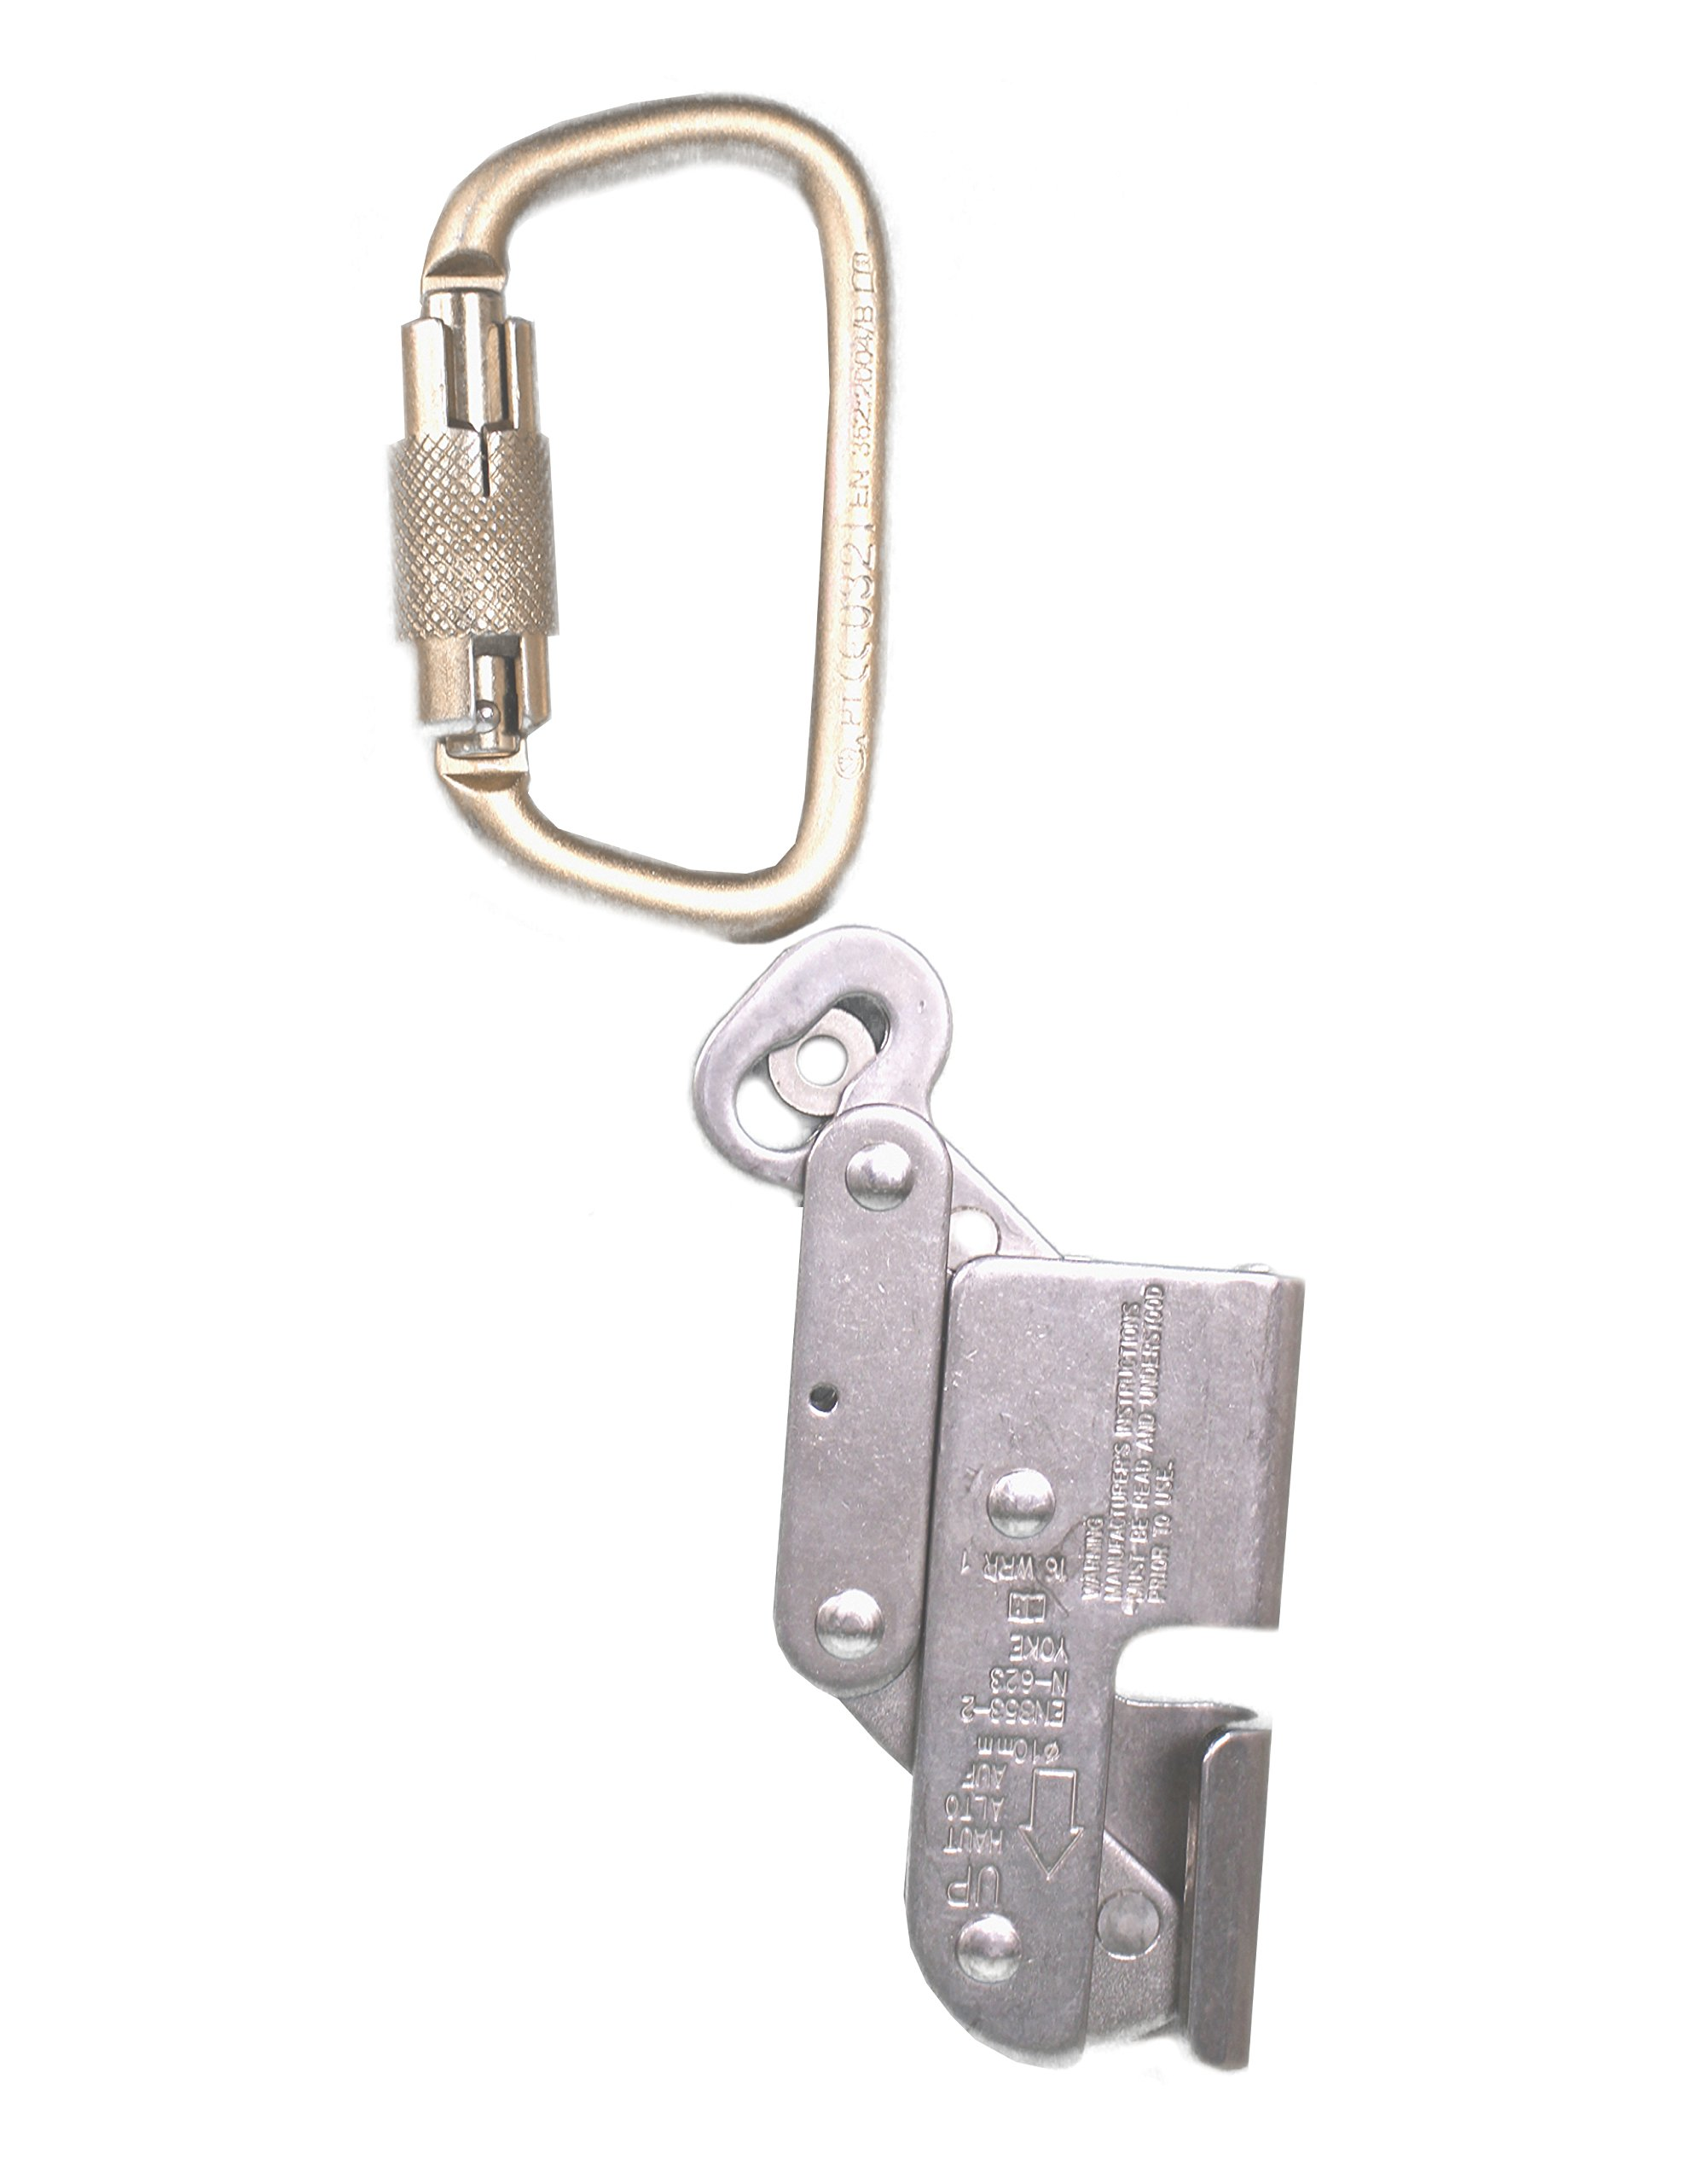 Elk River 19401 Wire Rope Grab with Carabiner, 3/8'' Size by Elk River (Image #1)